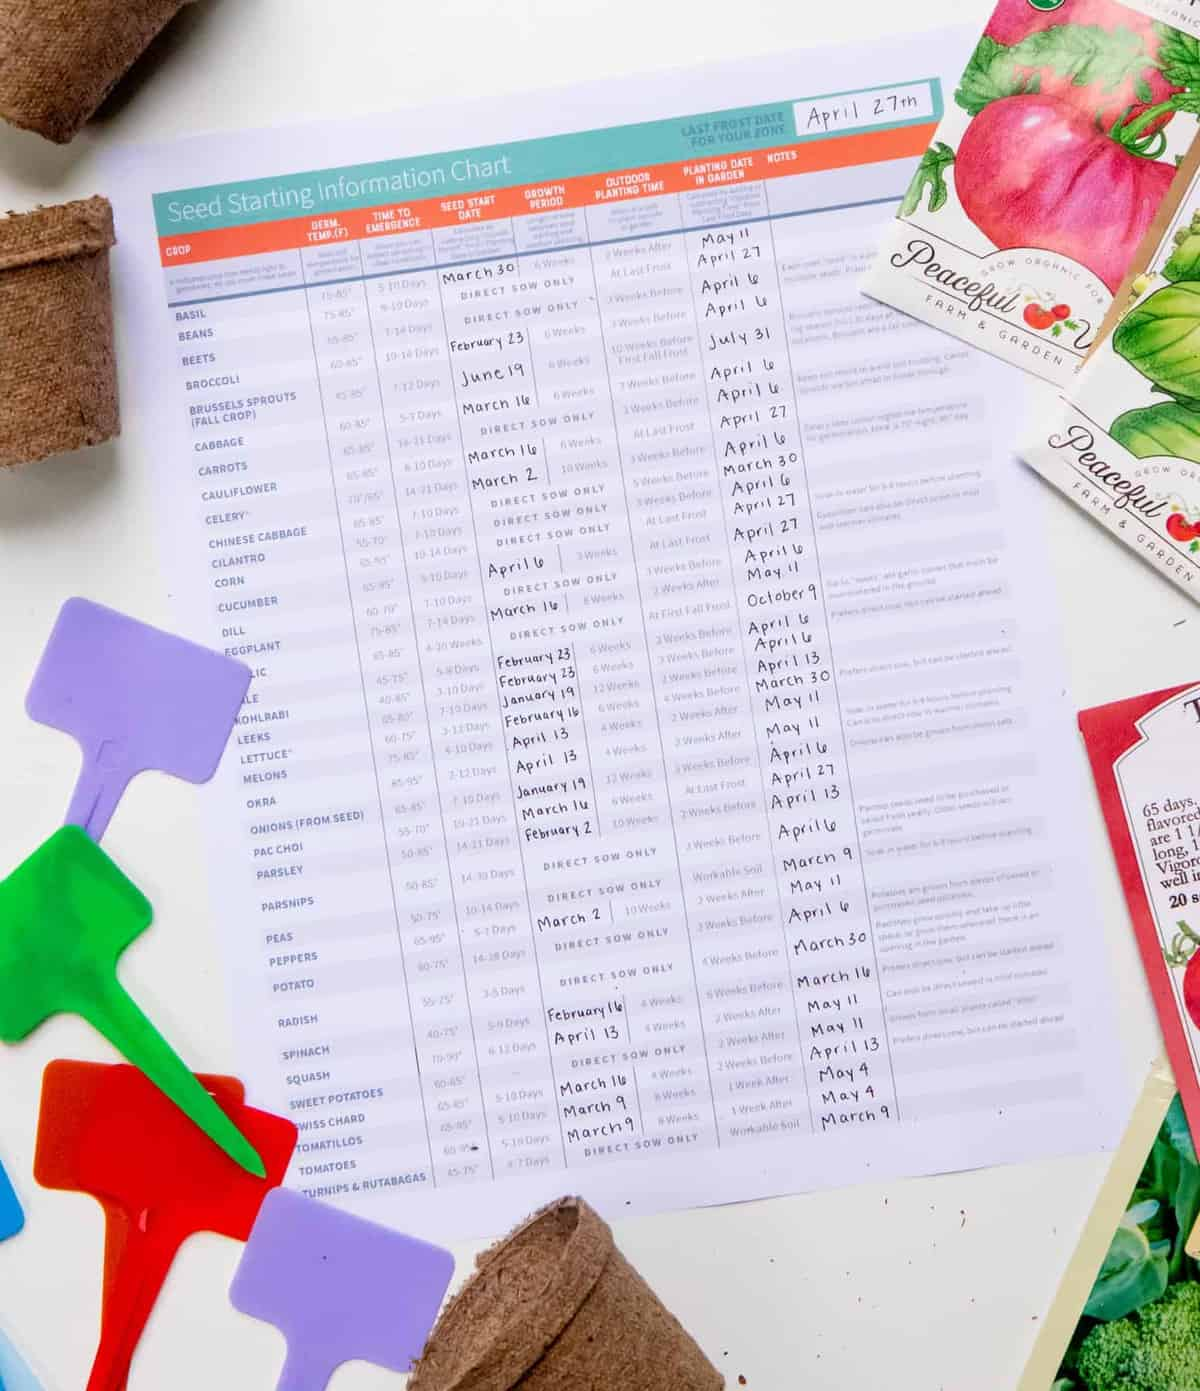 Seed Starting Information Chart and Printable surrounded by seed packets and plant markers